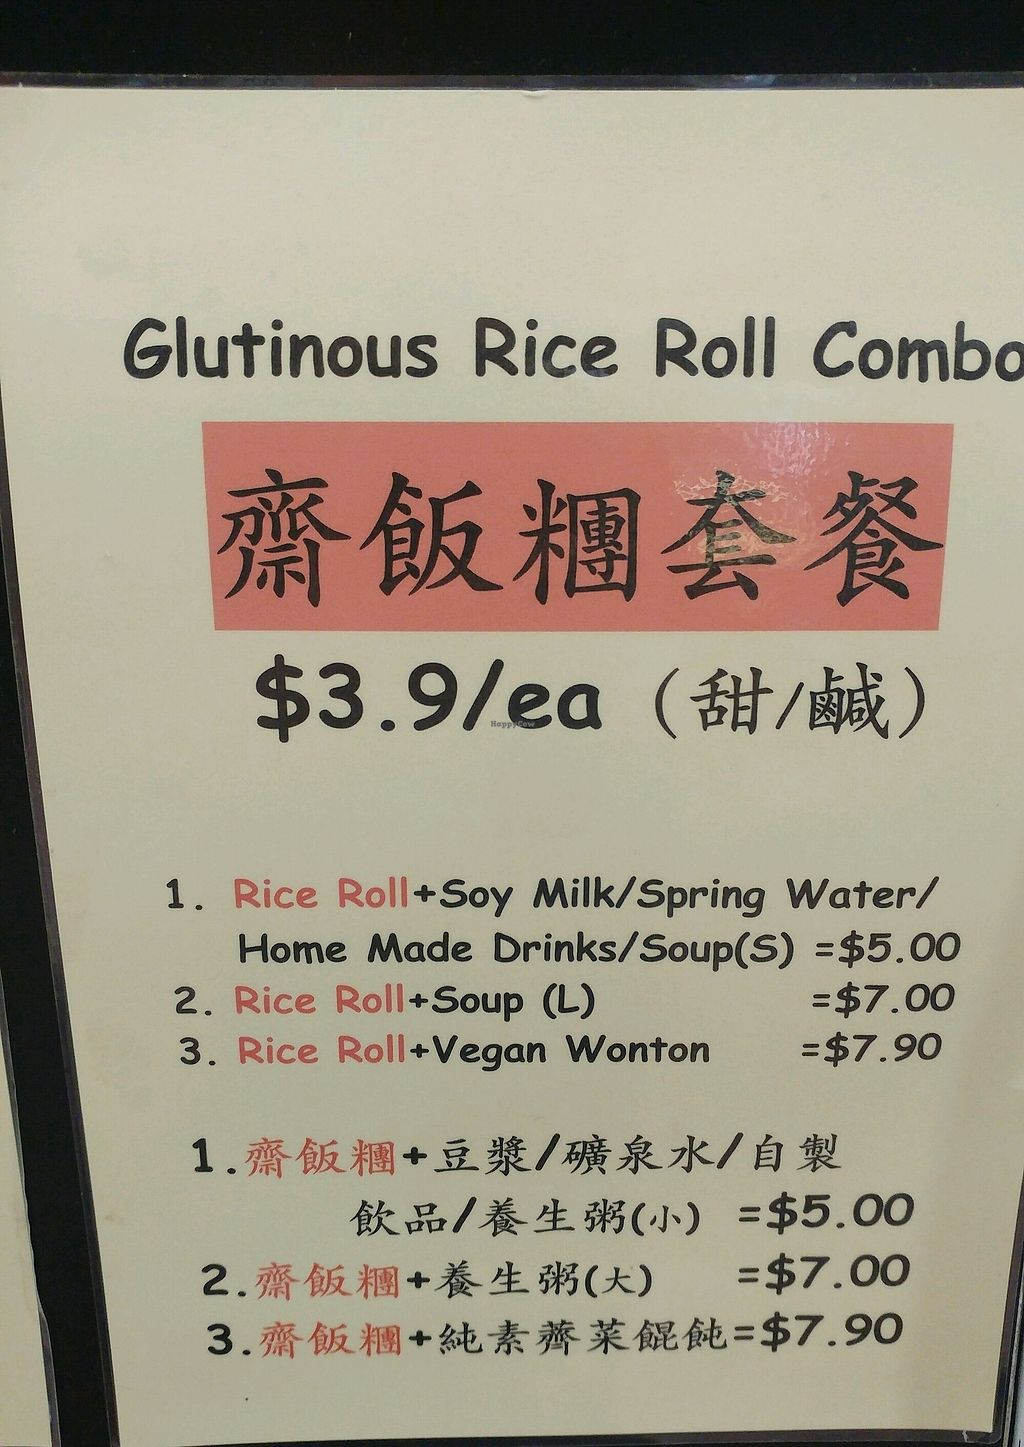 """Photo of Blissful Station  by <a href=""""/members/profile/verbosity"""">verbosity</a> <br/>Rice roll combo <br/> January 21, 2018  - <a href='/contact/abuse/image/78788/349124'>Report</a>"""